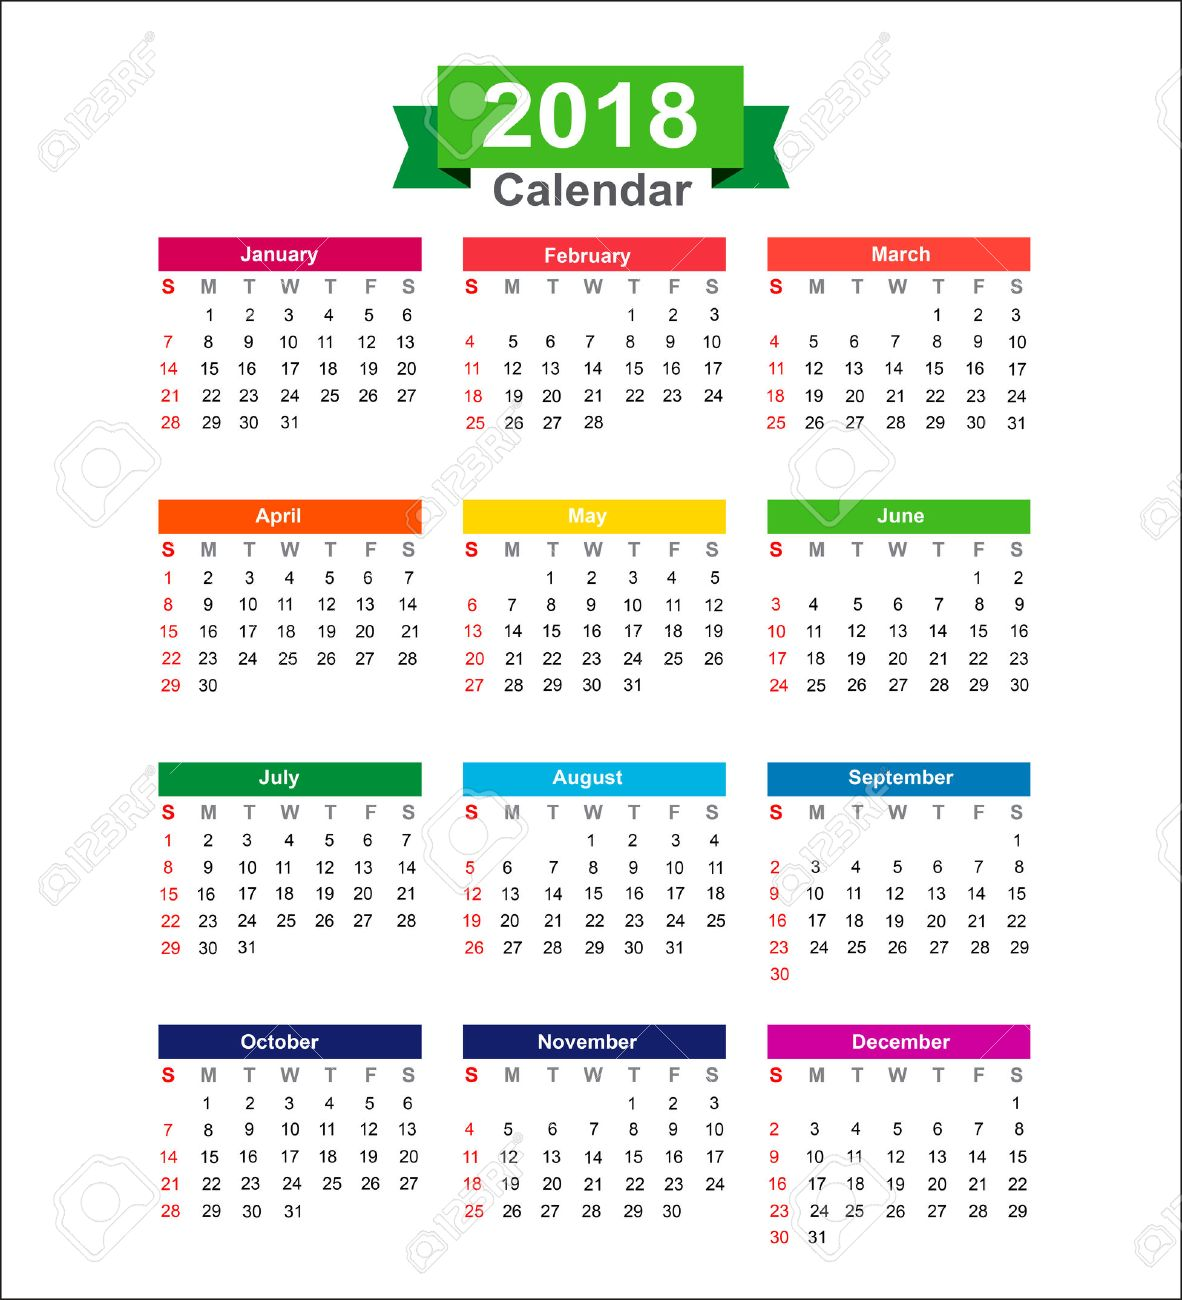 2018 year calendar isolated on white background vector illustration stock vector 60513835